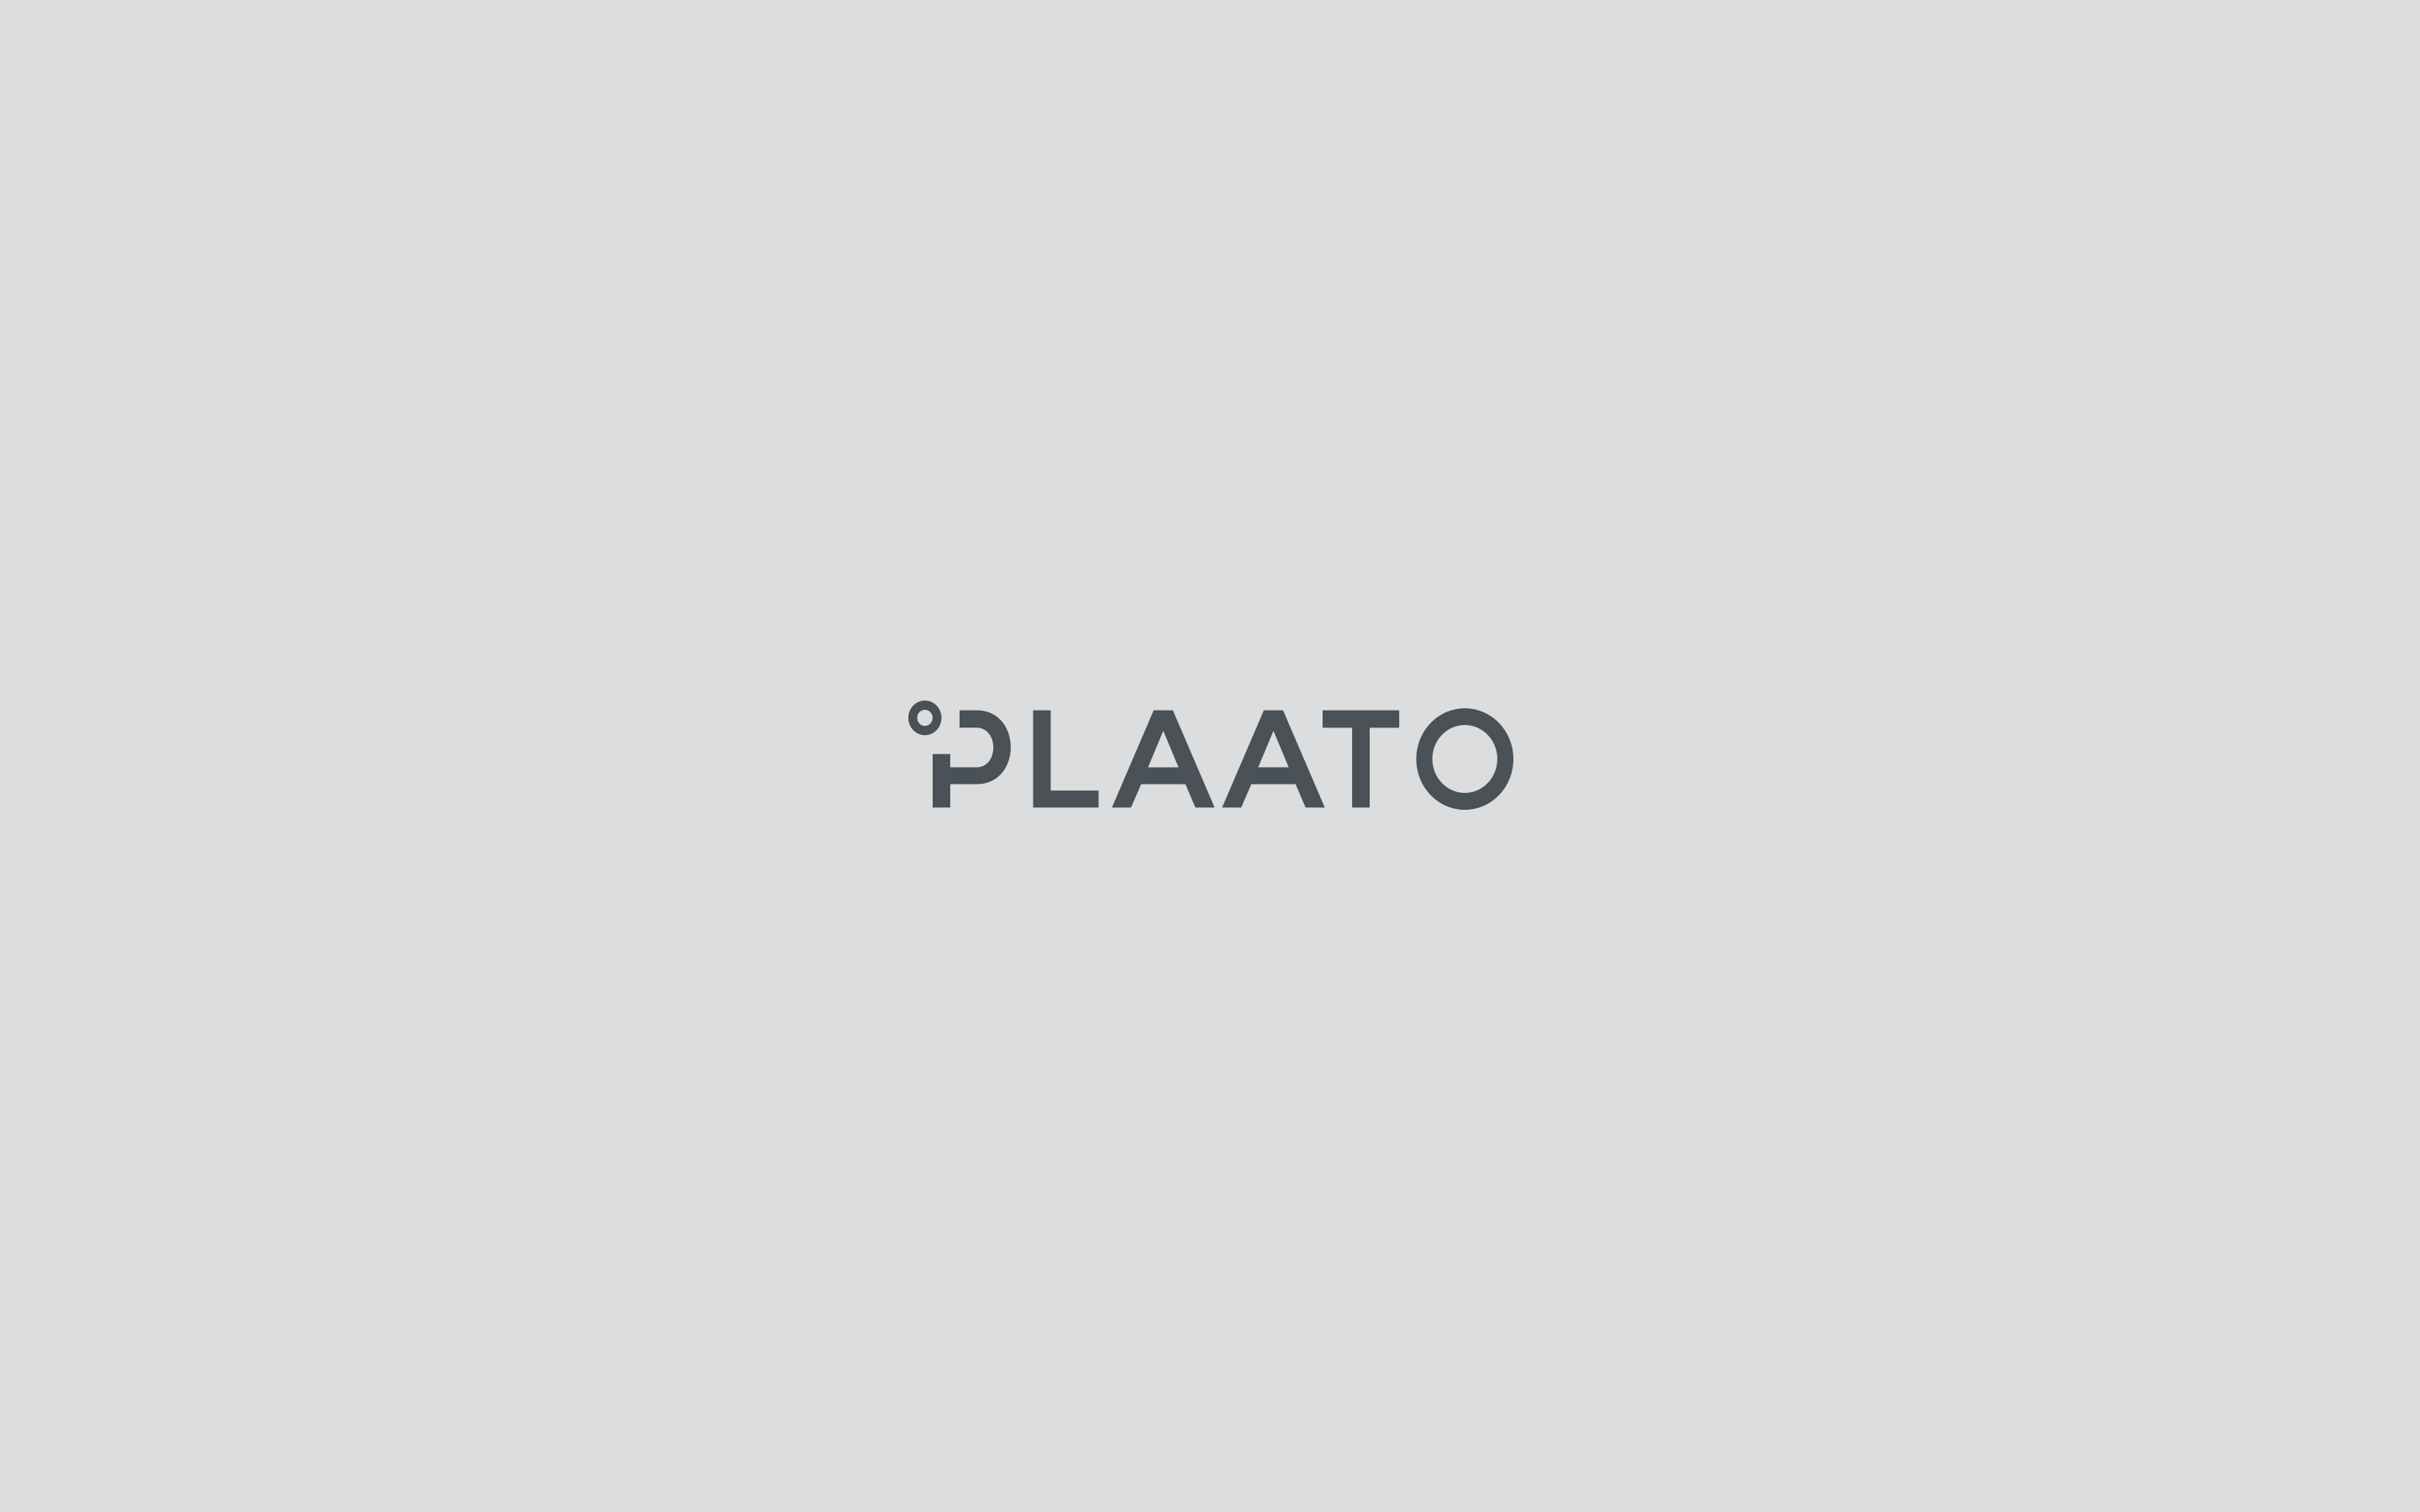 plaato logo dark on grey